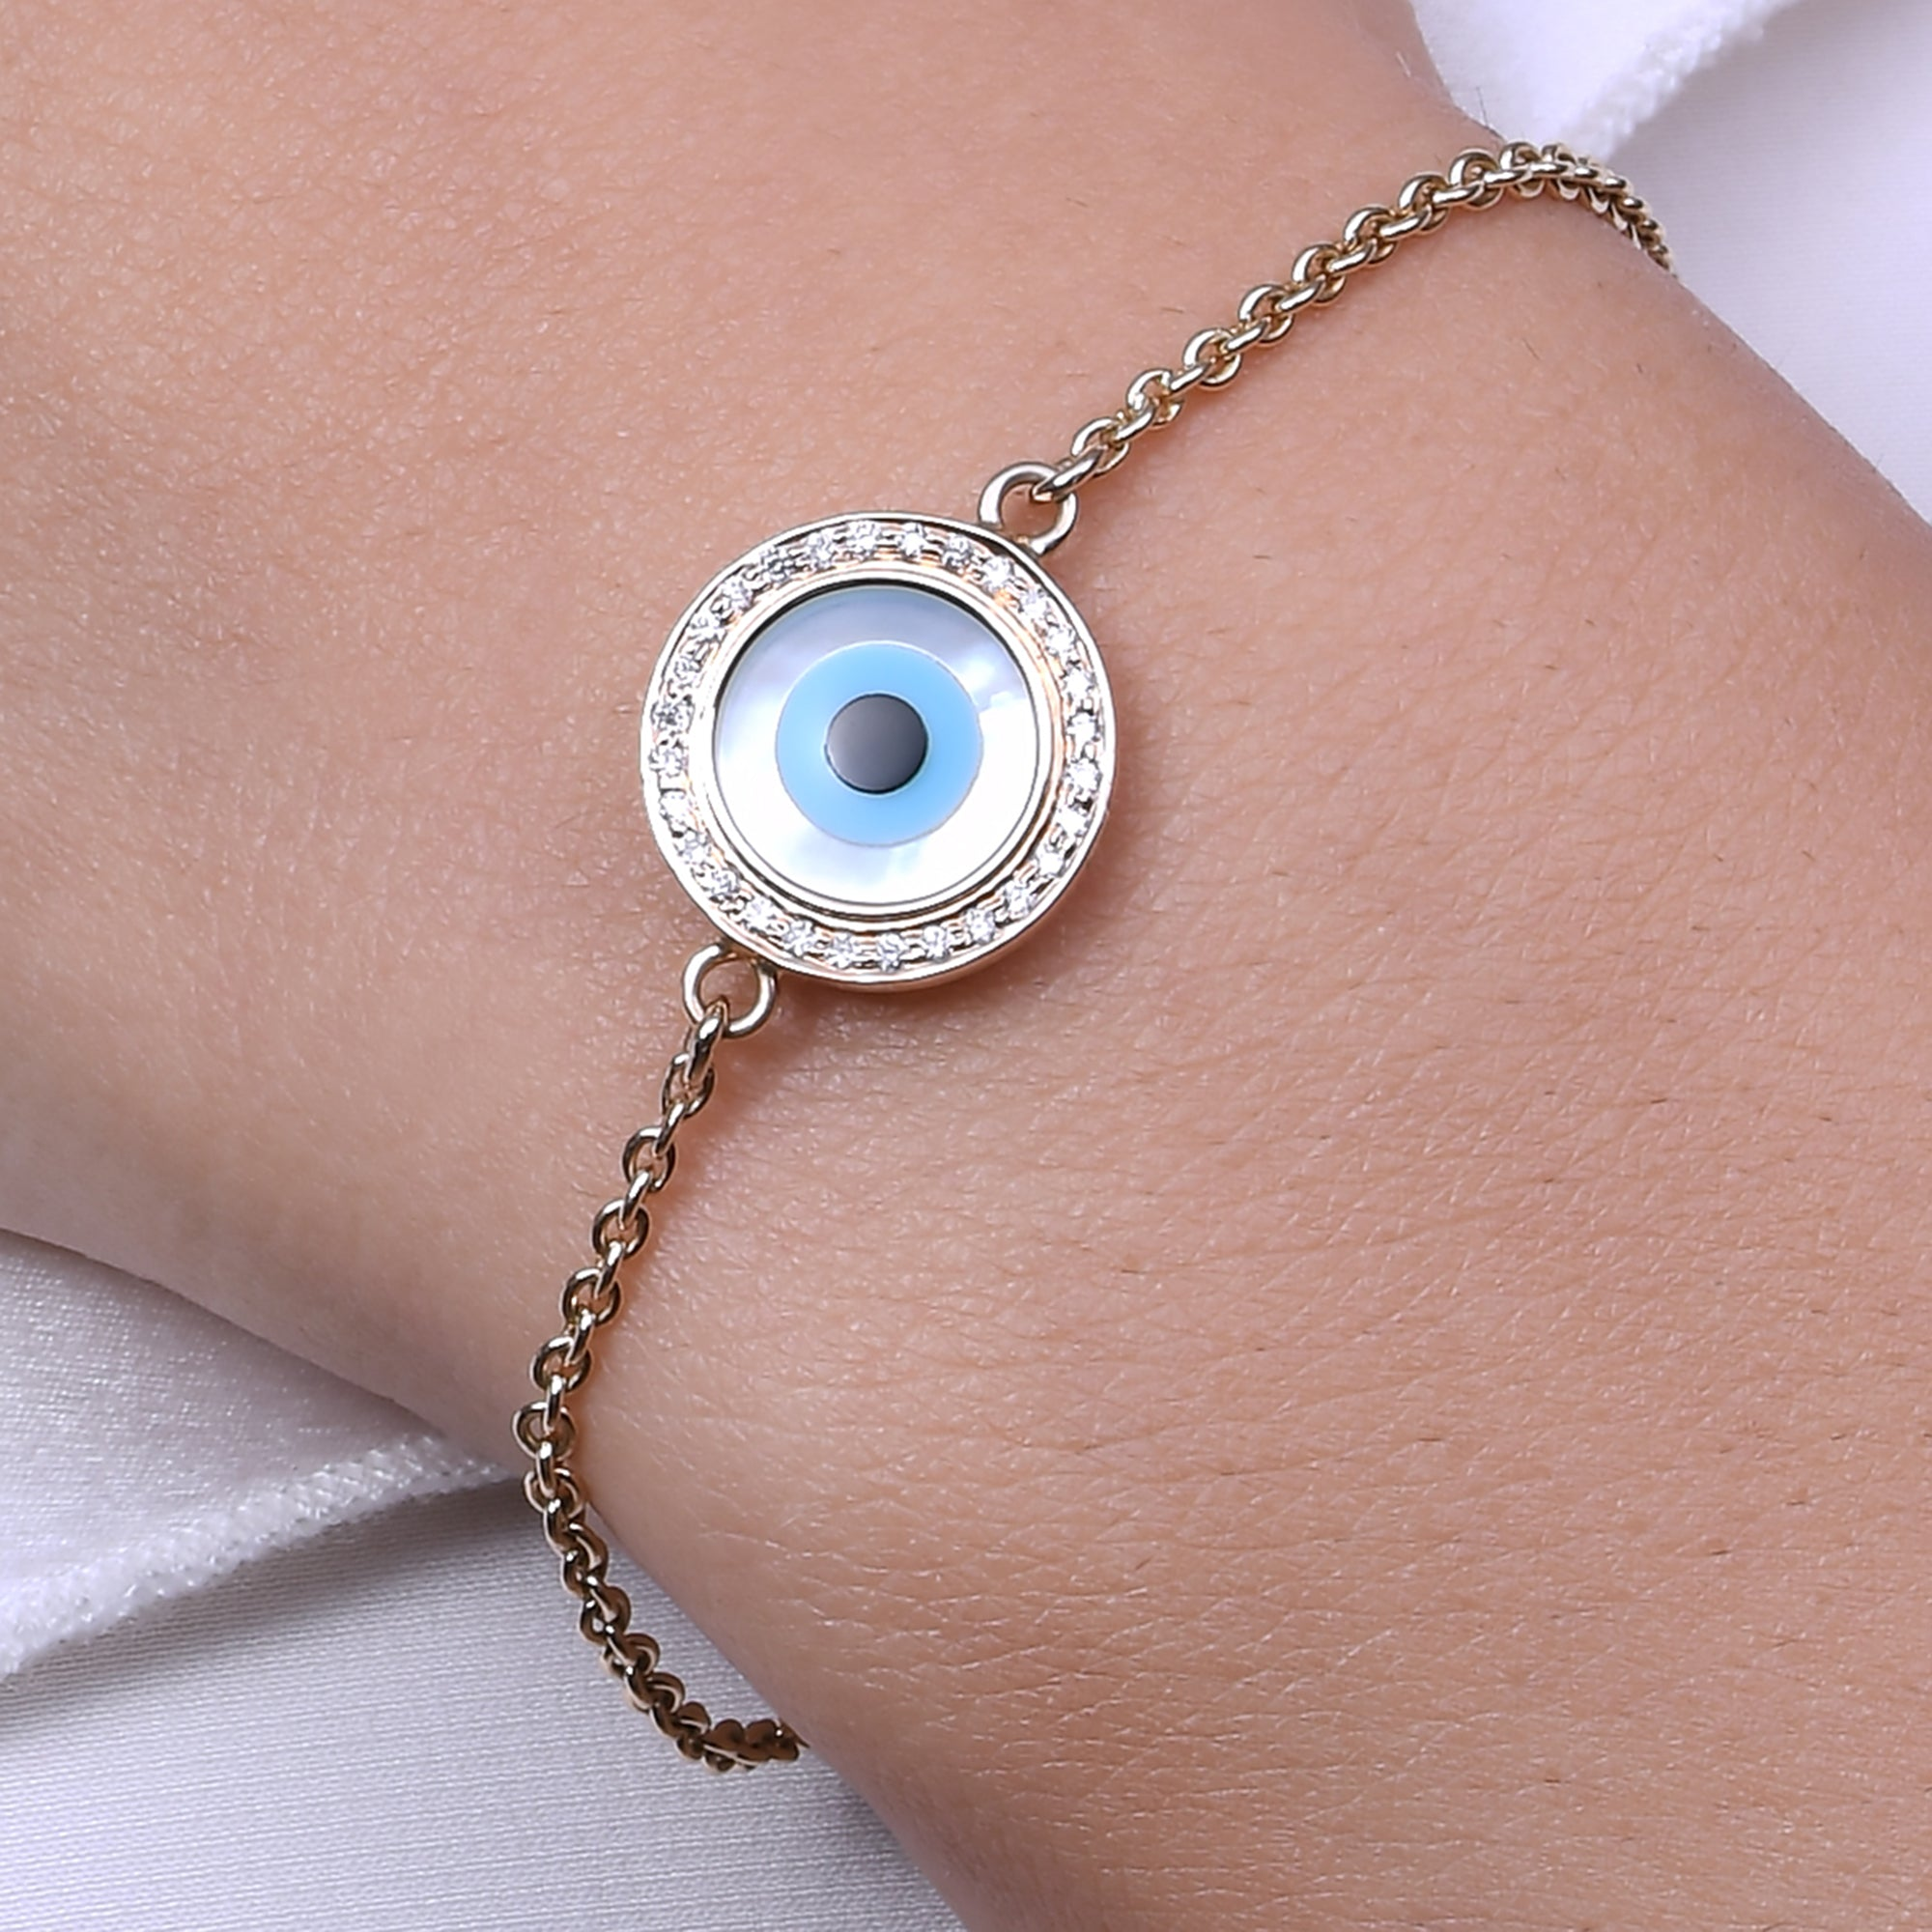 Small Round Evil Eye Diamond Chain Bracelet